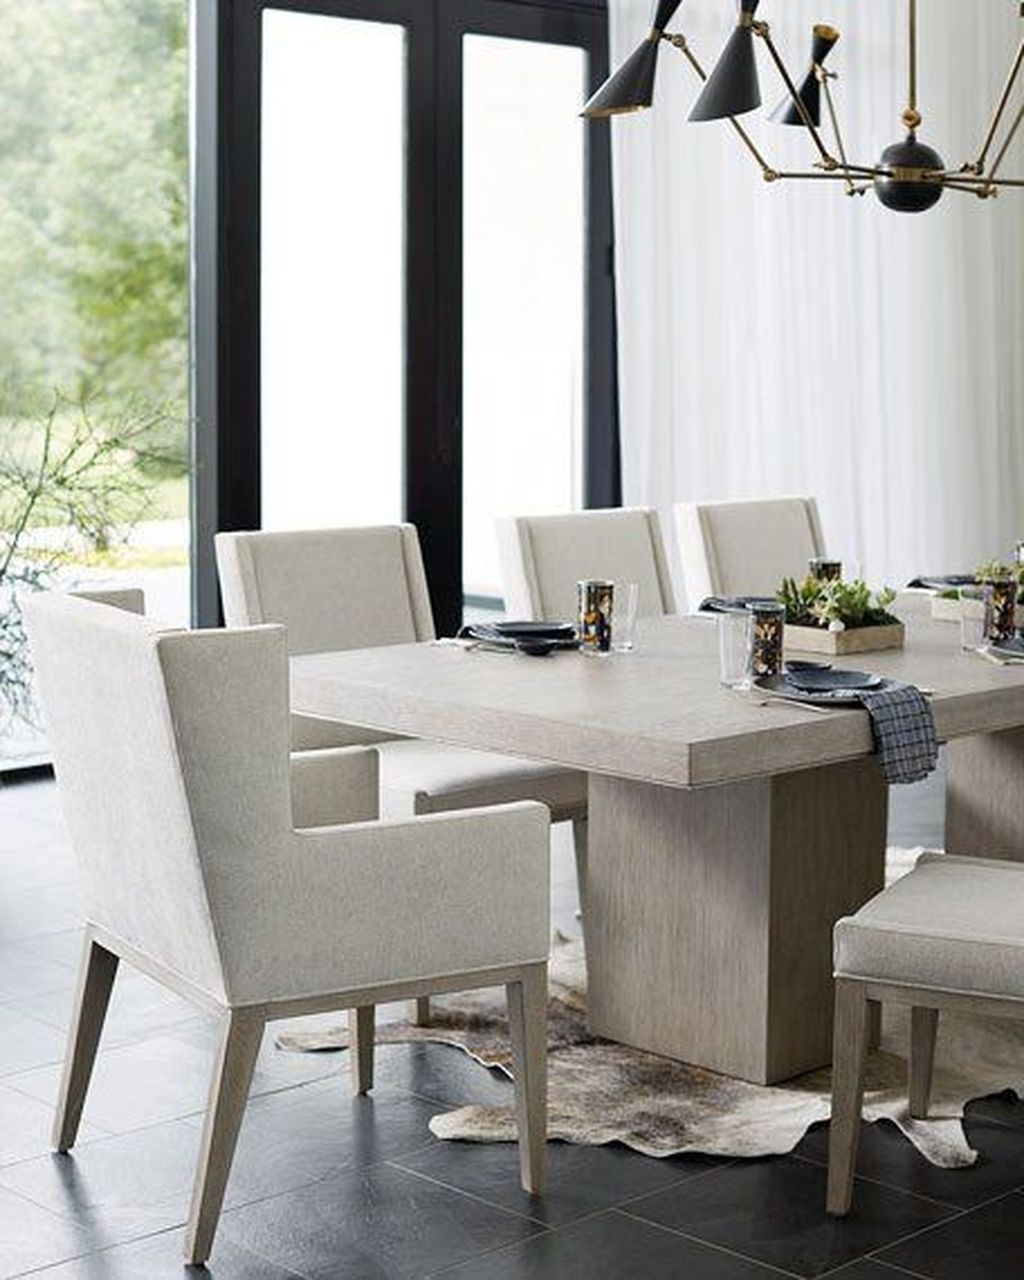 Stunning Dining Room Table Design With Modern Style 28